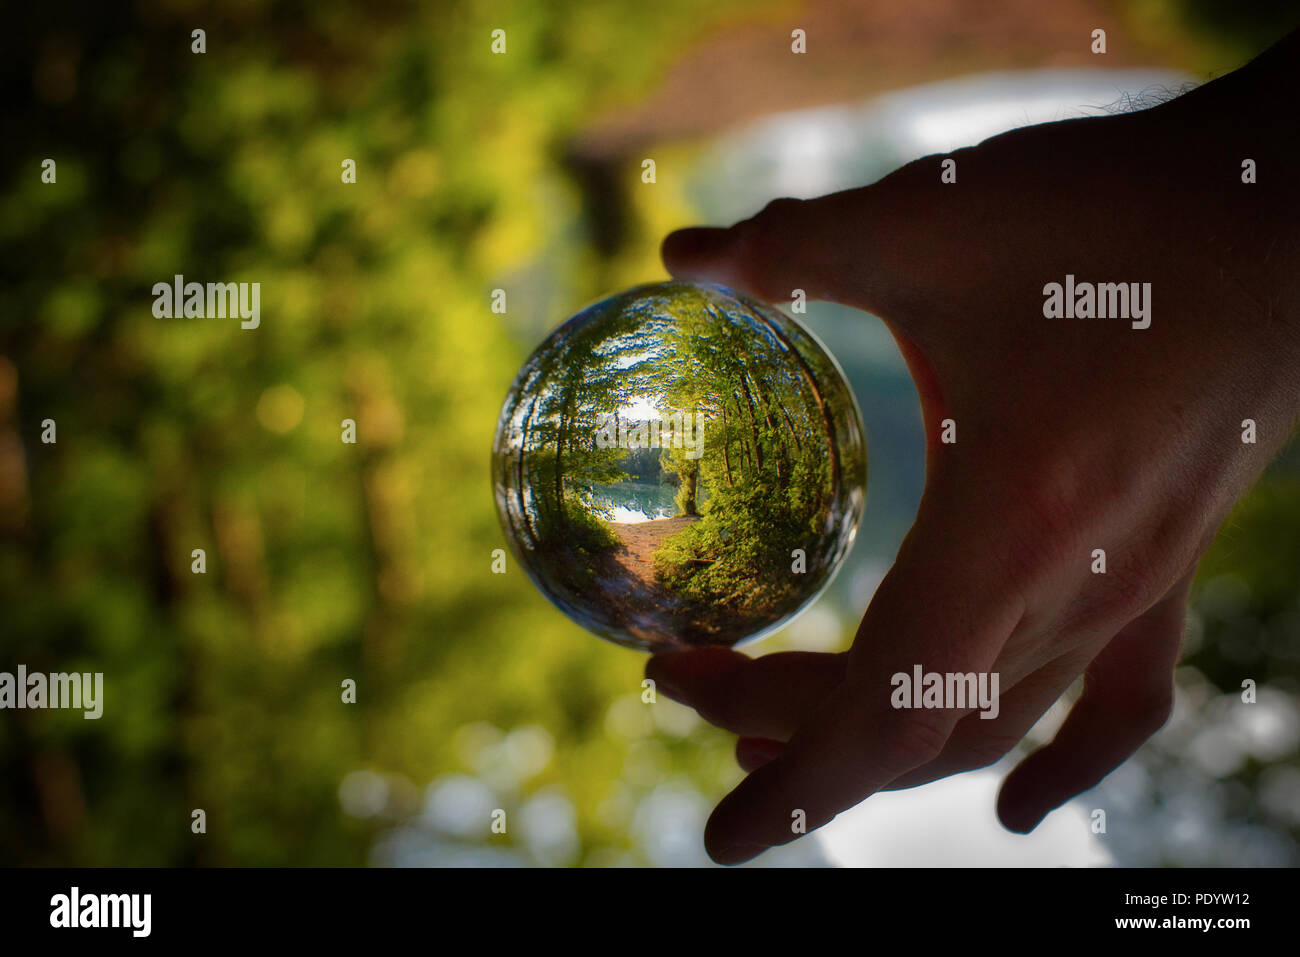 Lensball Photography Crystal Ball - Stock Image